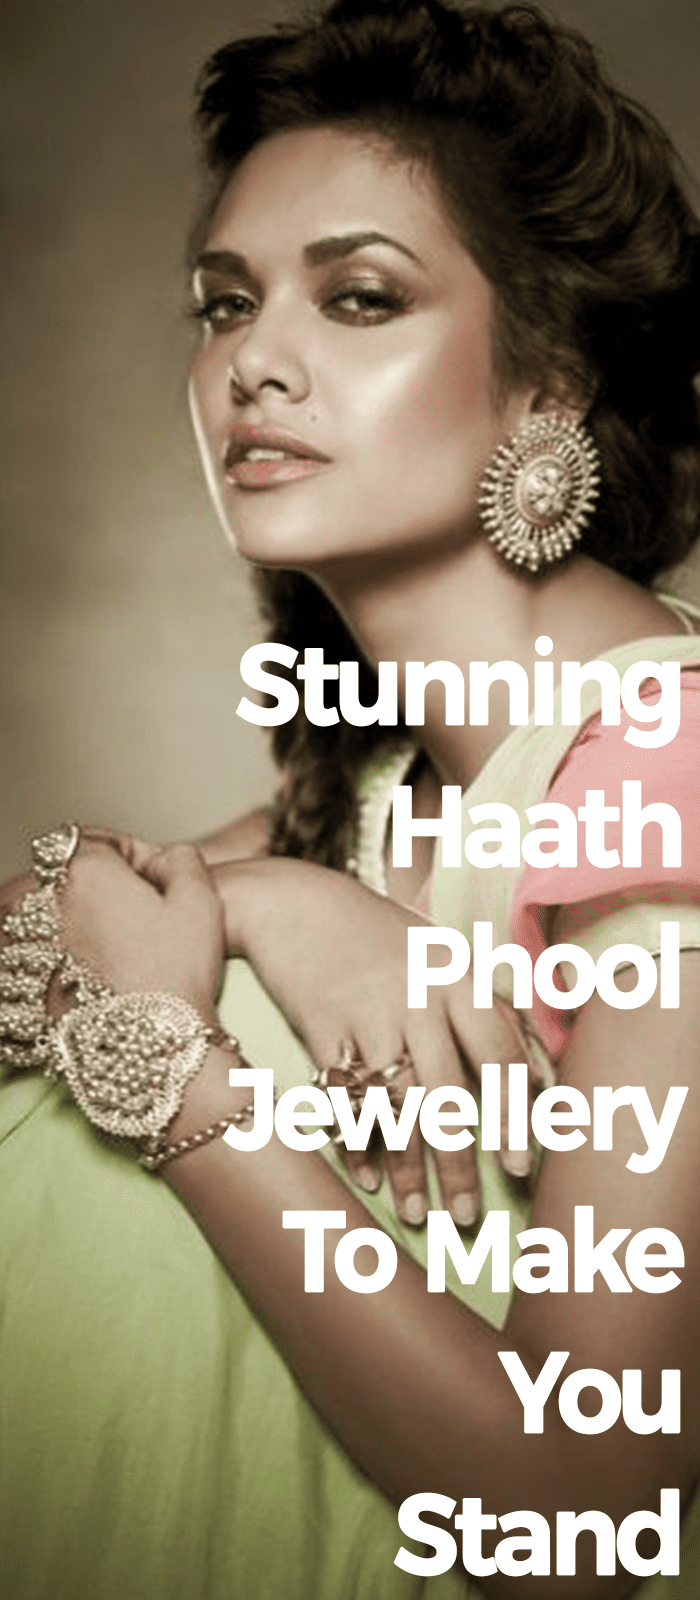 Stunning Haath Phool Jewellery To Make You Stand.